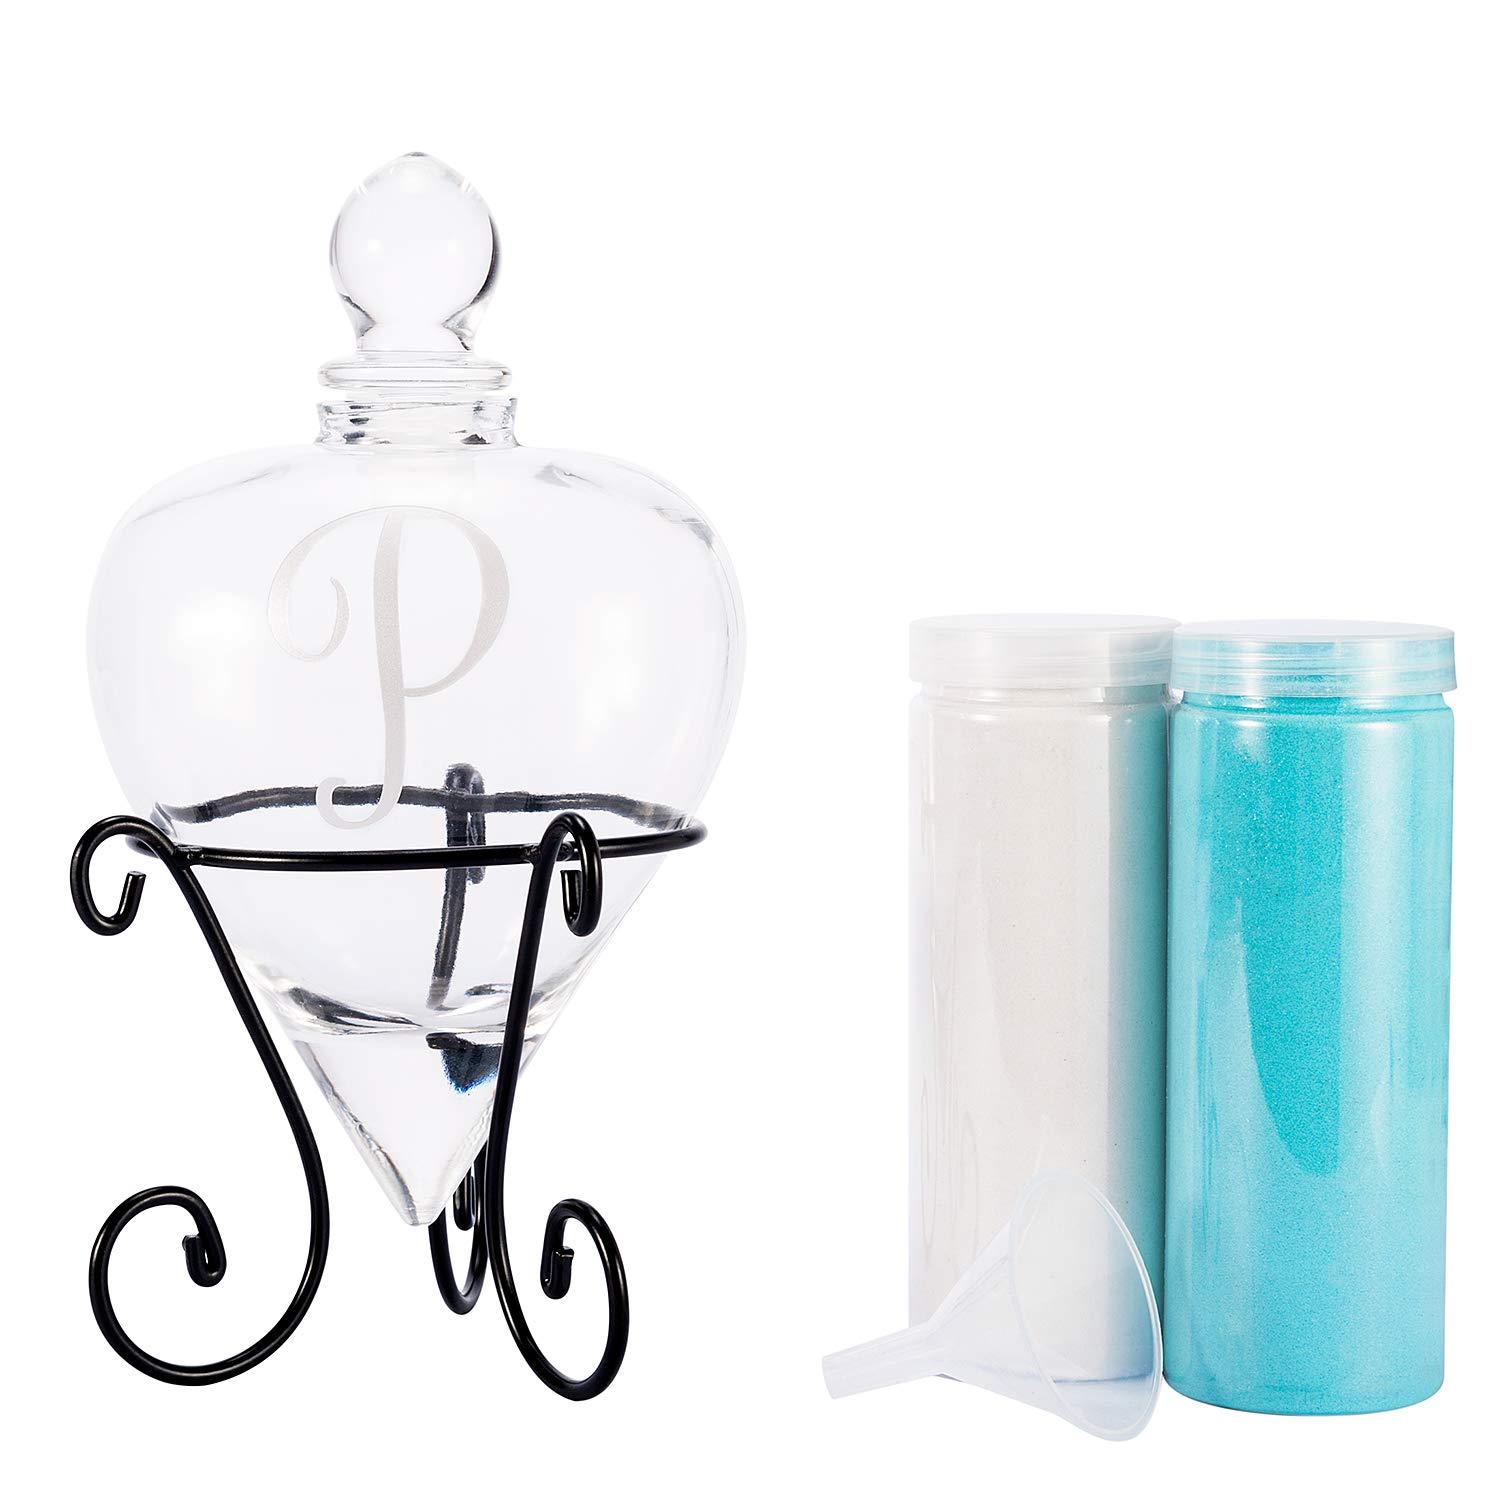 AF ANDREW FAMILY Monogrammed Etched Wedding Glass Heart Shaped Unity Set with Metal Stand-Initial P White& Blue Sand Included by AF ANDREW FAMILY